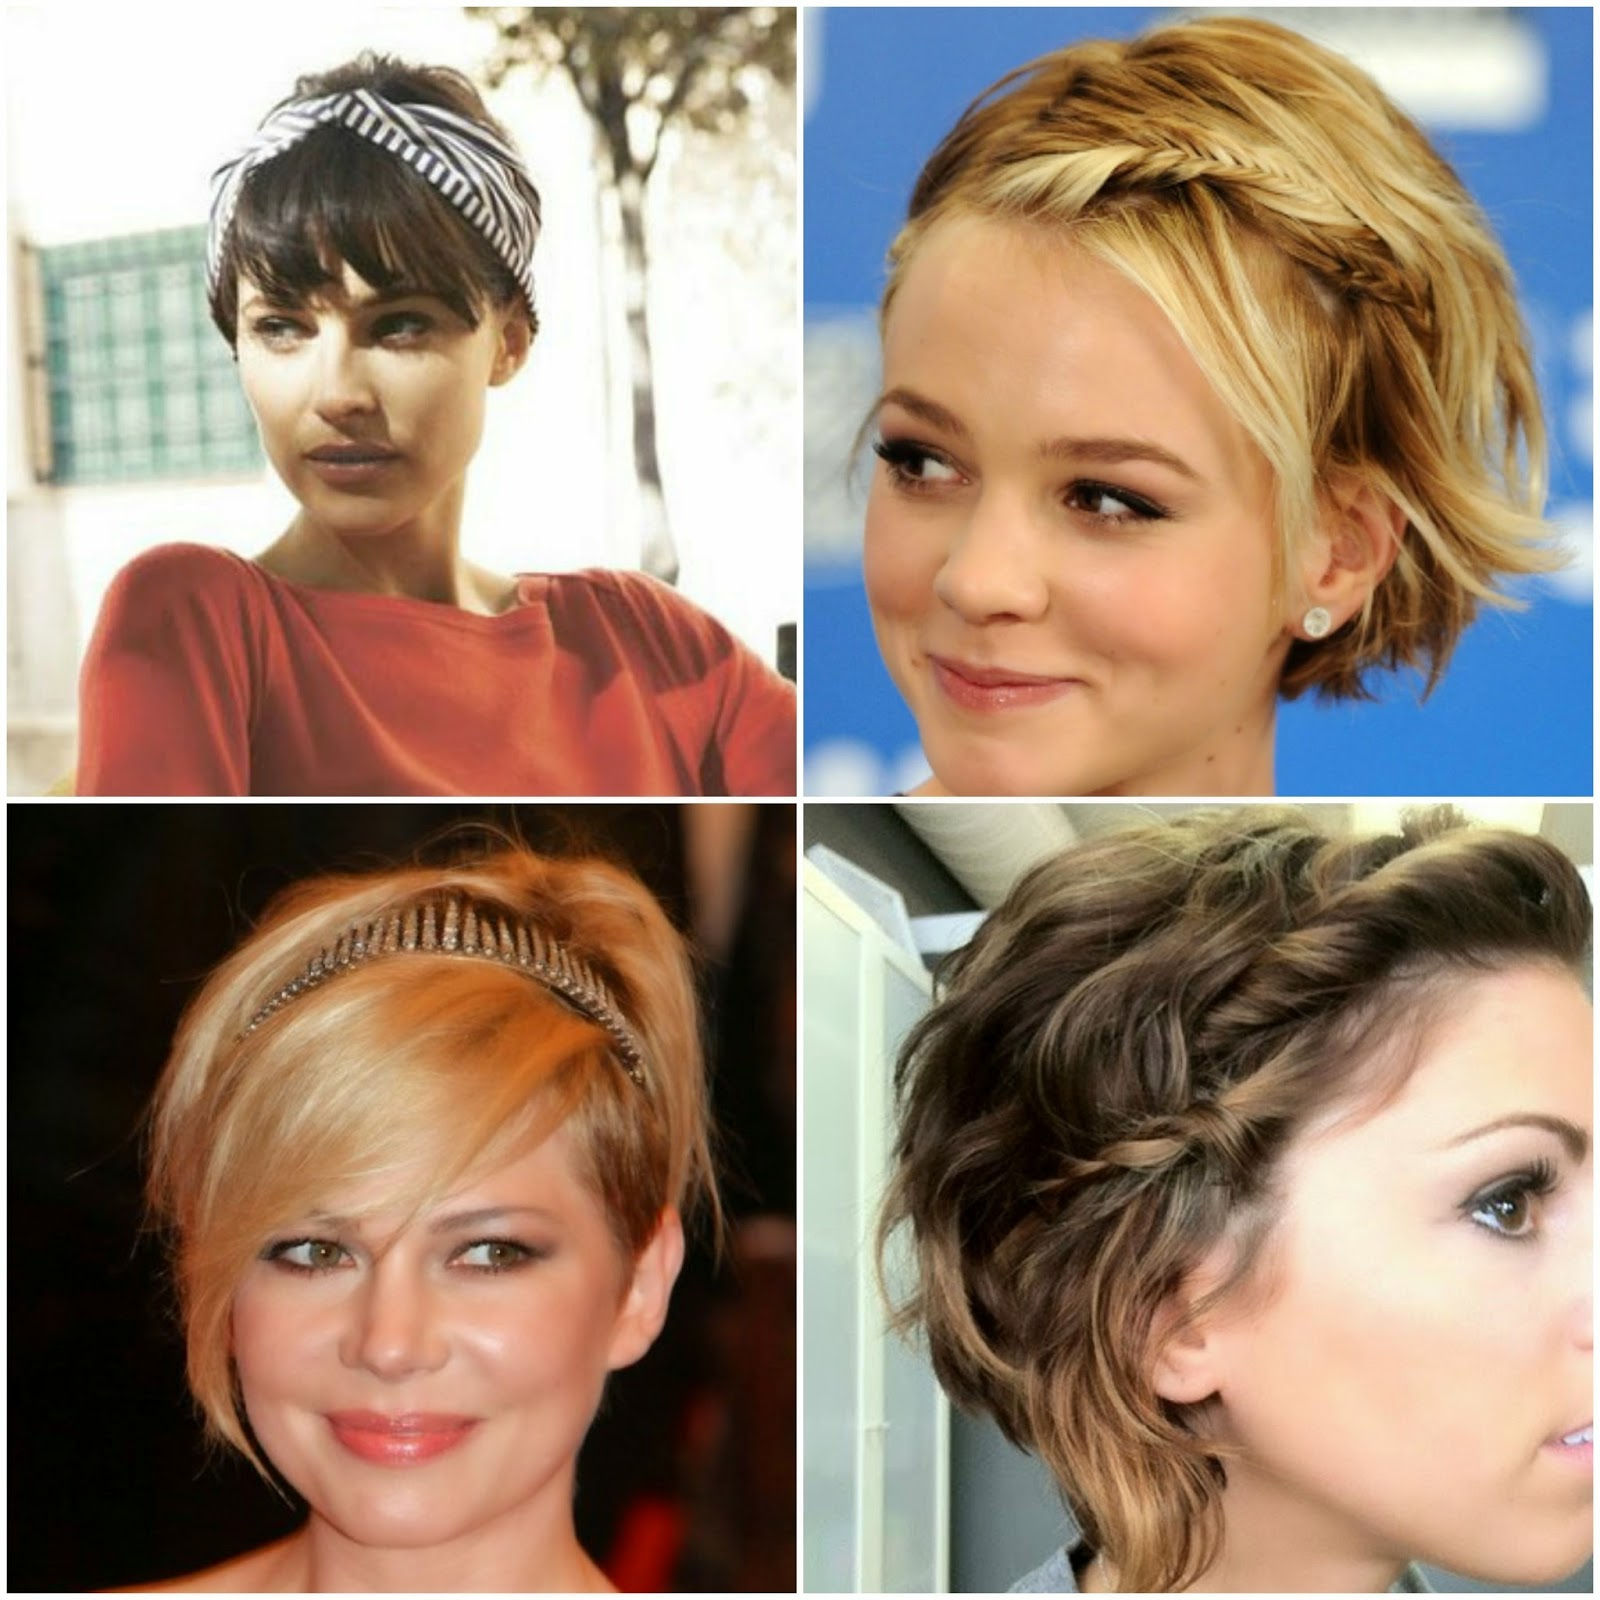 Growing Out My Pixie Cut Like : Trollxchromosomes for Short Hairstyles For Growing Out A Pixie Cut